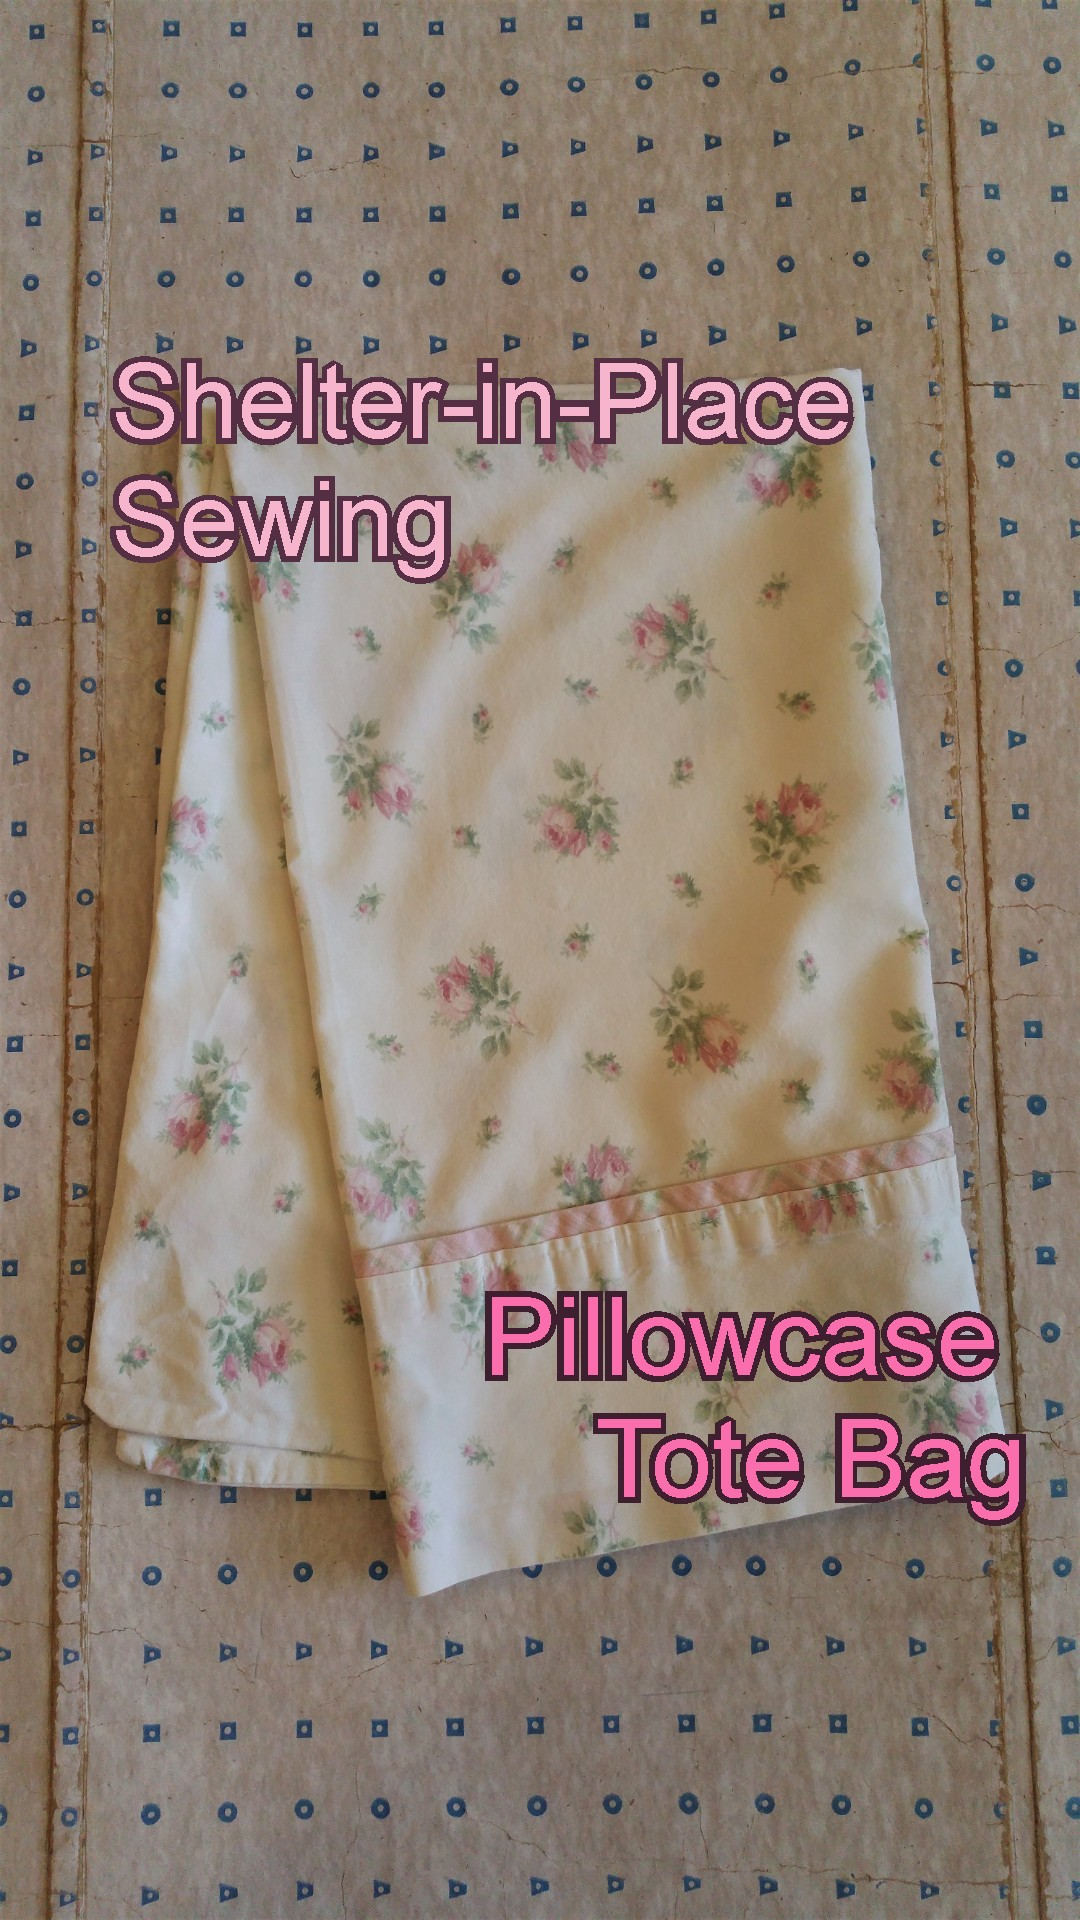 Shelter-in-Place Sewing: Pillowcase Tote